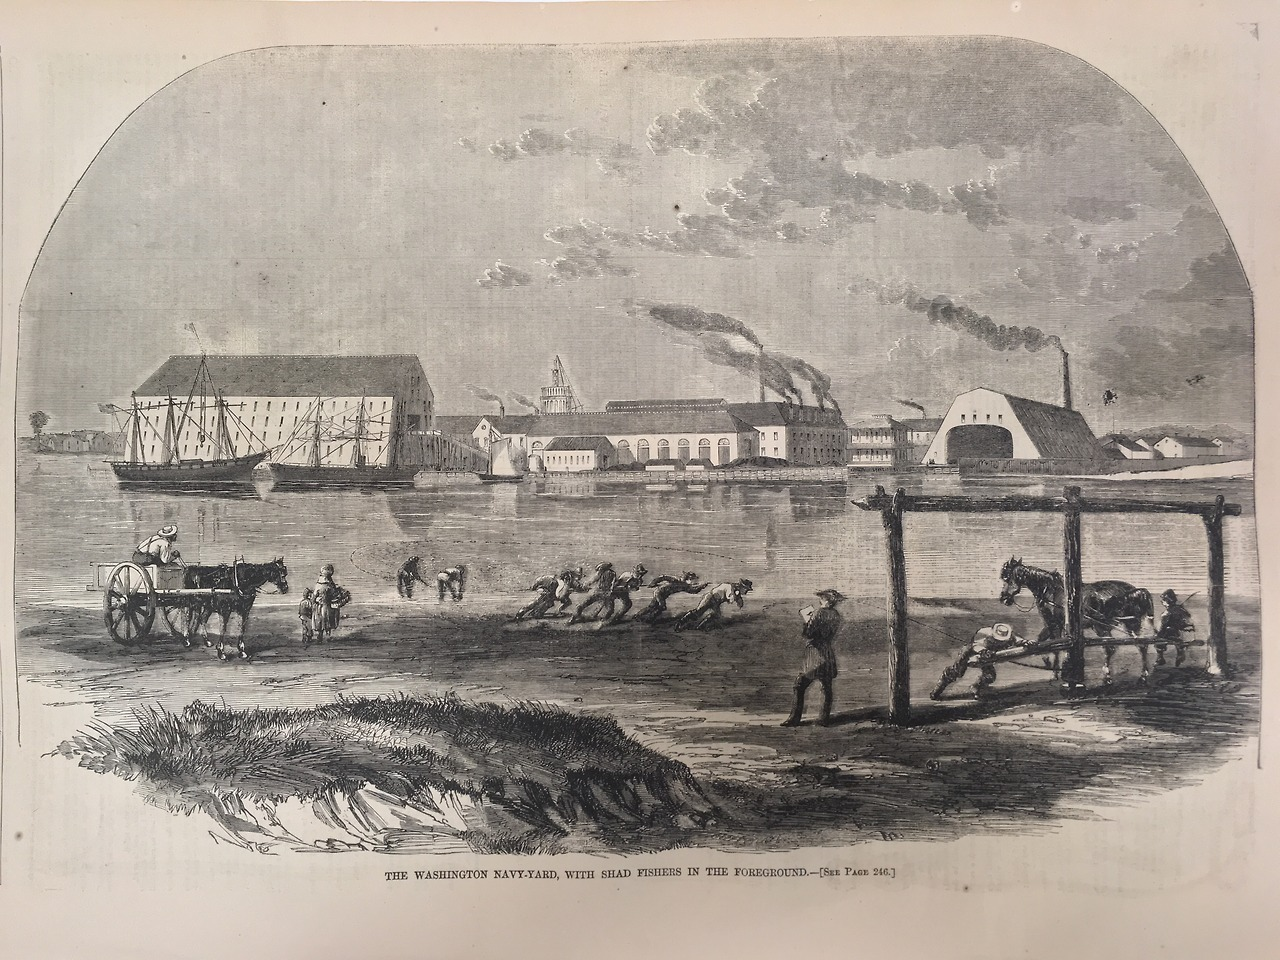 """The Washington Navy Yard, With Shad Seines in the Foreground."" Harpers Weekly, 1861. Collections of the Chesapeake Bay Maritime Museum.   Spring has historically meant the beginning of one of the Chesapeake's most significant harvests- shad. This ""founding fishery"" marked the beginning of large-scale commercial fishing in the Bay, in the mid-1700′s. Unlike oysters or crabs, which required canning and refrigeration (not invented for another 75 years), shad could be preserved just by being salted and dried. As many tobacco plantations switched to wheat, the time saved by the less-laborious crop meant that many waterfront estates began to use their slave labor to harvest shad as another way to make money.   Shad remained a vital industry in the Chesapeake well into the 20th century. This image, from Harper's Weekly in 1861, shows the traditional spring shad seine harvest on the shoreline of the Potomac. In the background is the Washington Navy Yard, depicted as tidy and efficient (a quintessentially Victorian love of industry), and beyond that, the skeleton of the Capitol Building, still under construction."